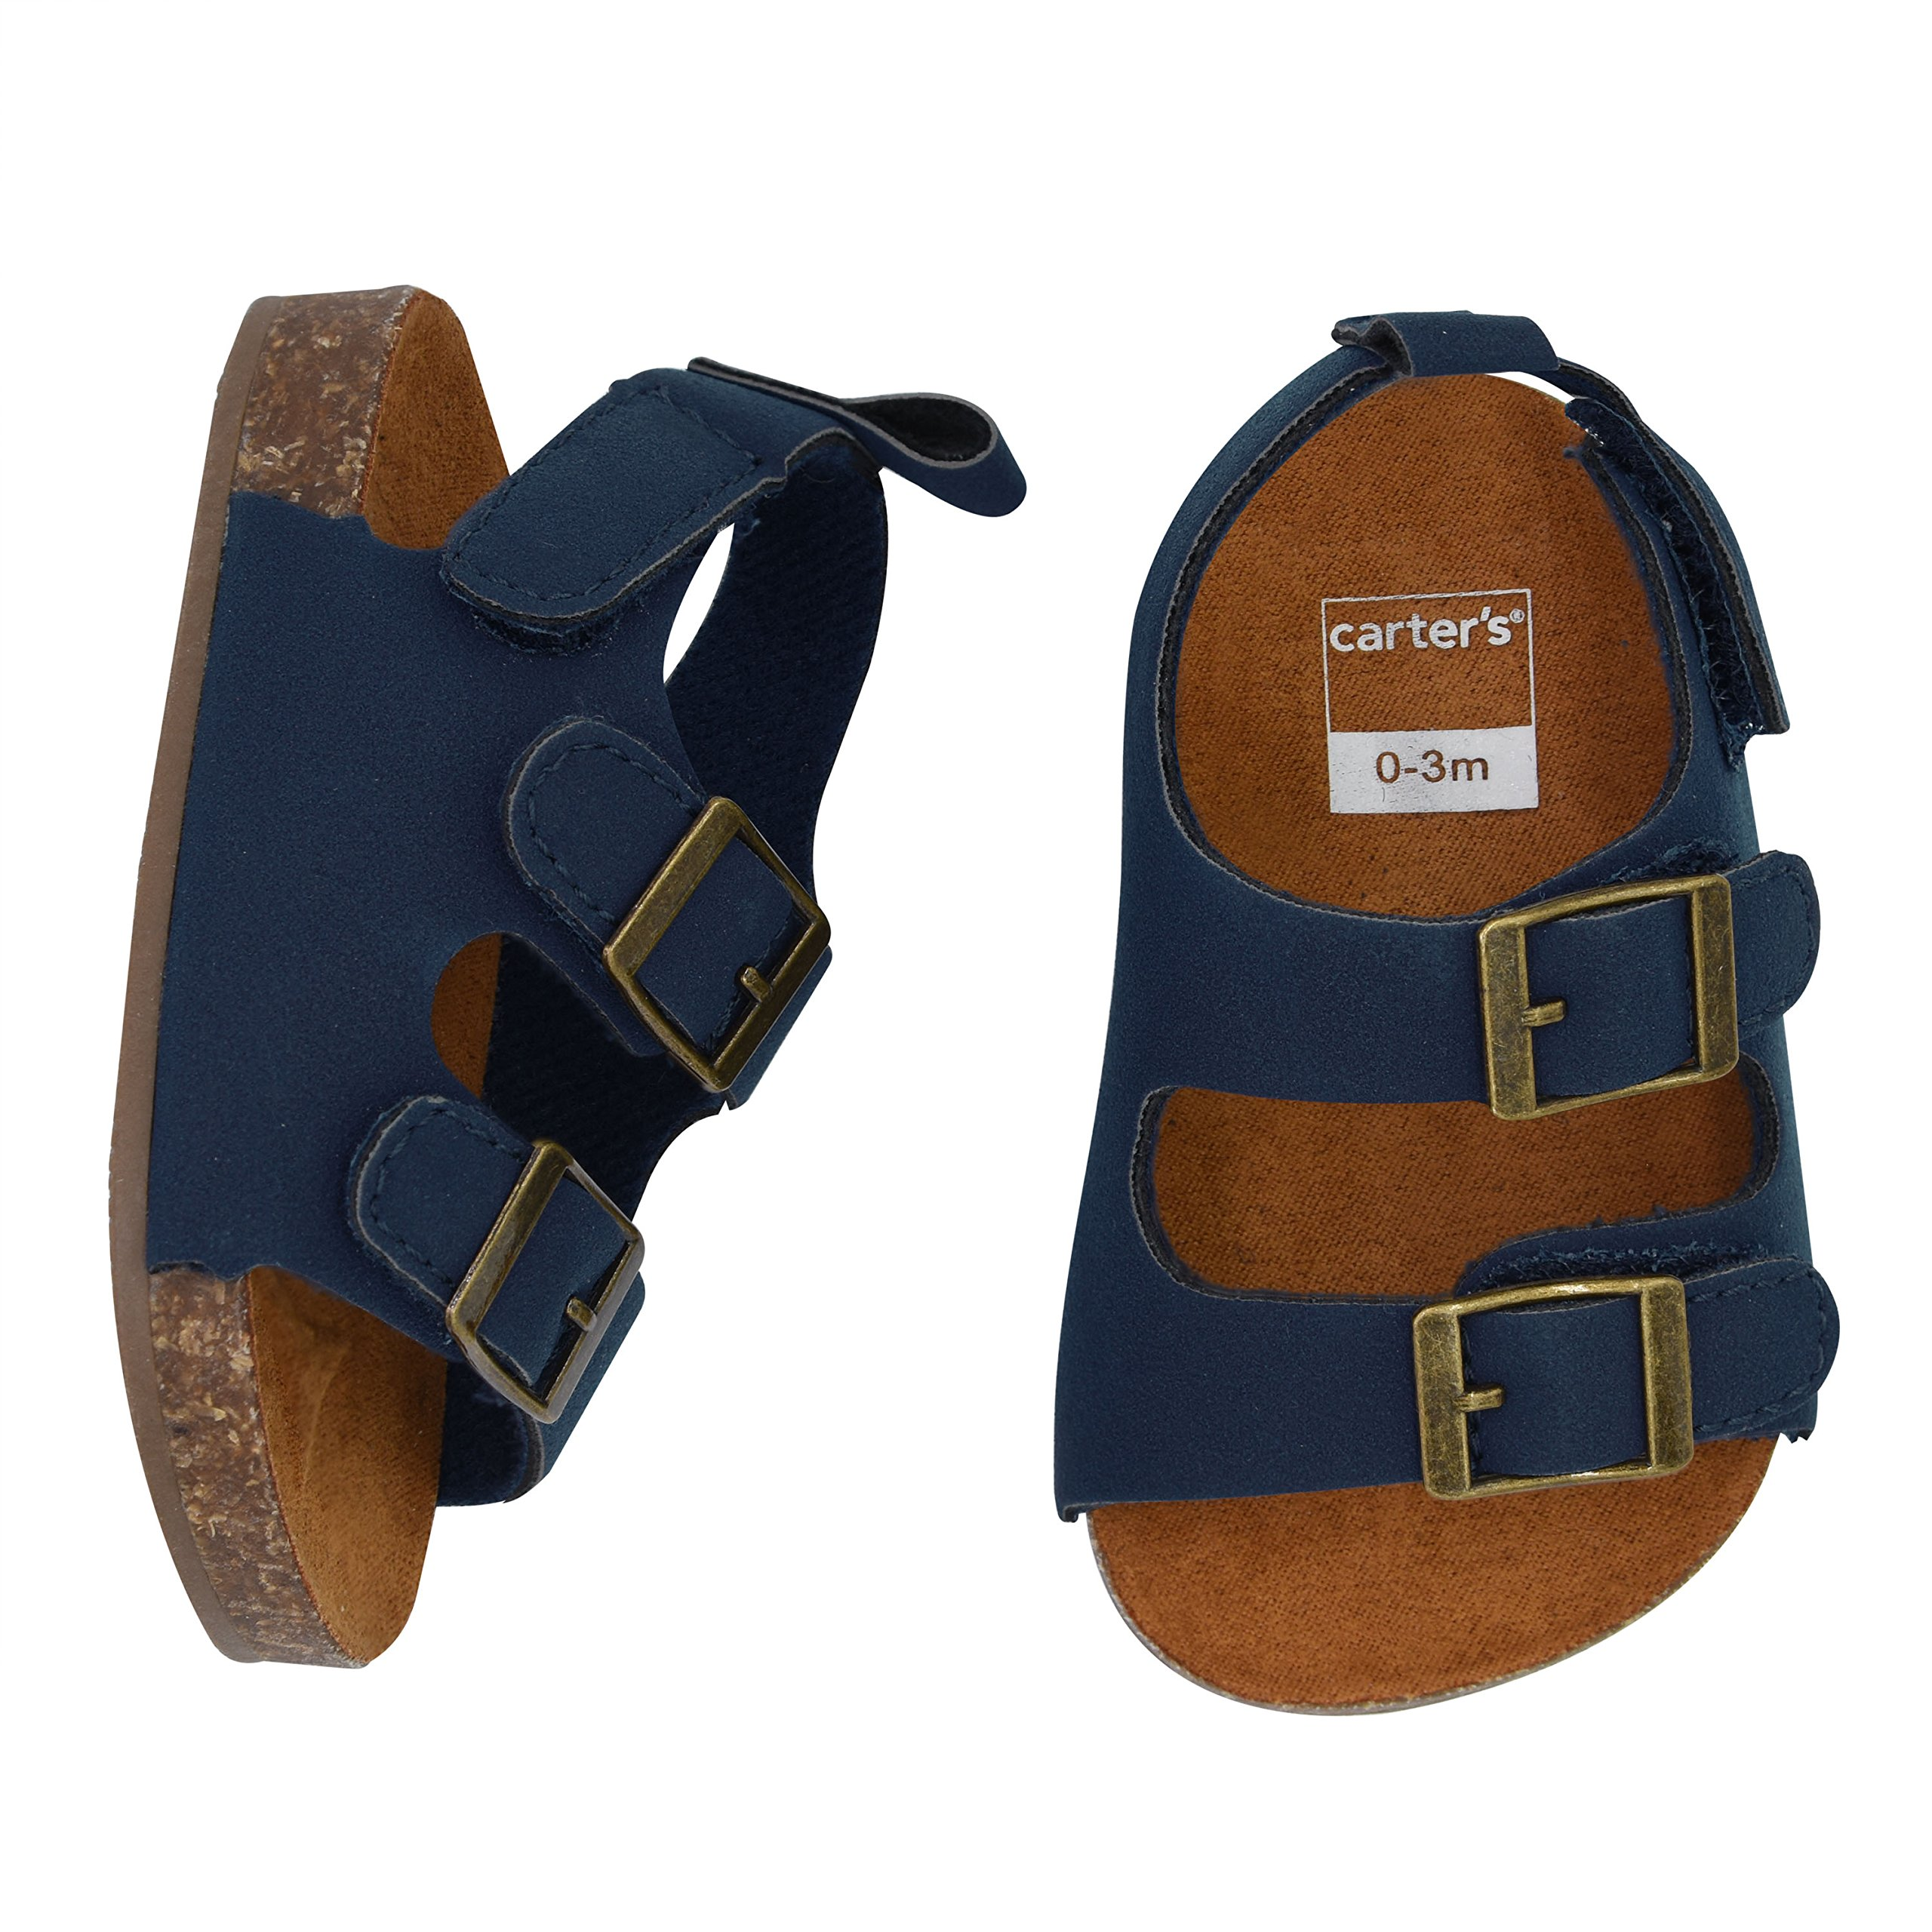 Carter's Boys' Flat Sandal, Navy, Cork Sole, 0-3 Months, Size 1 Regular US Infant